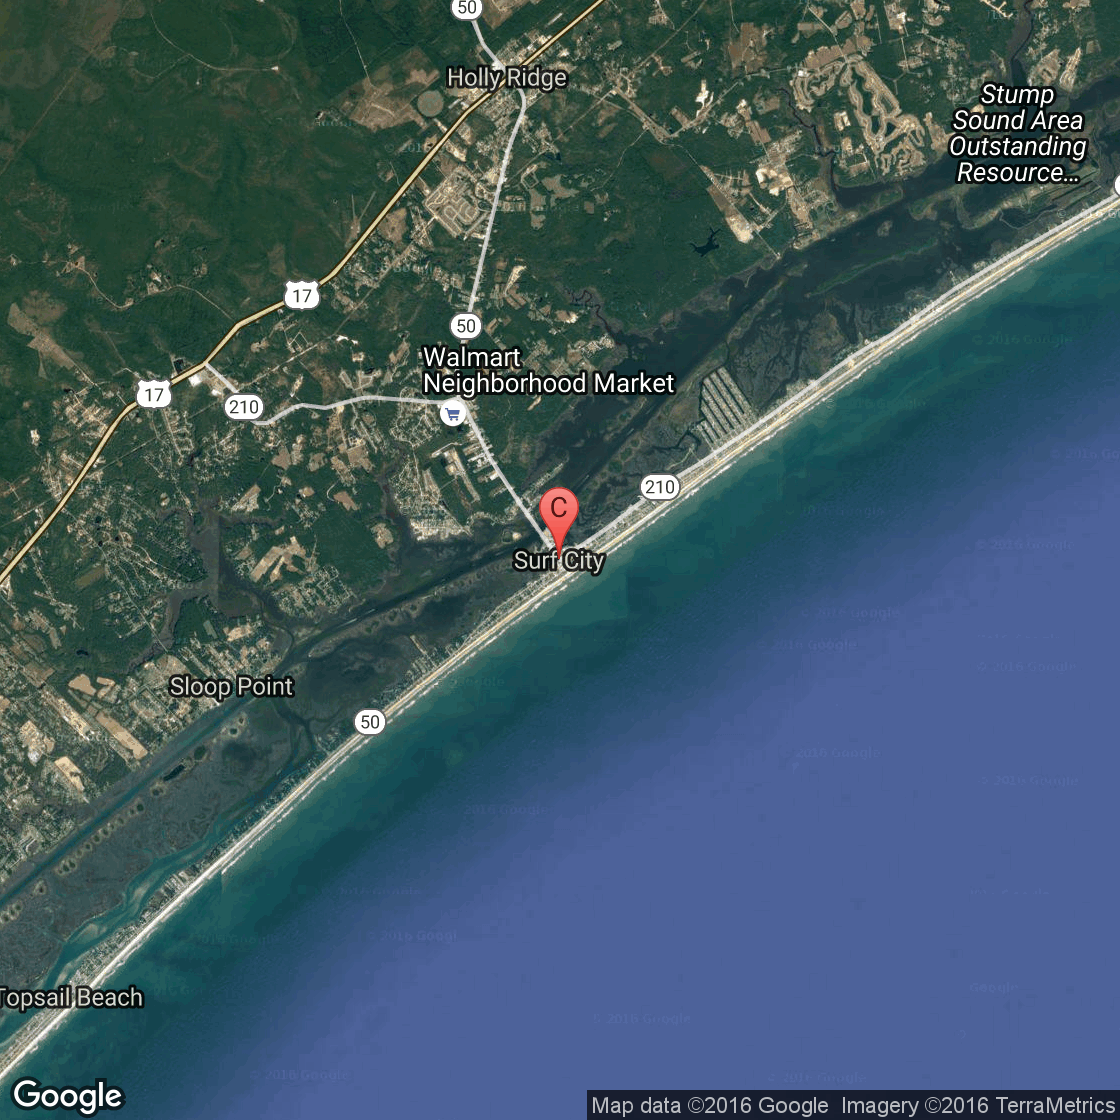 Hotels That Takes Dogs In Surf City North Carolina